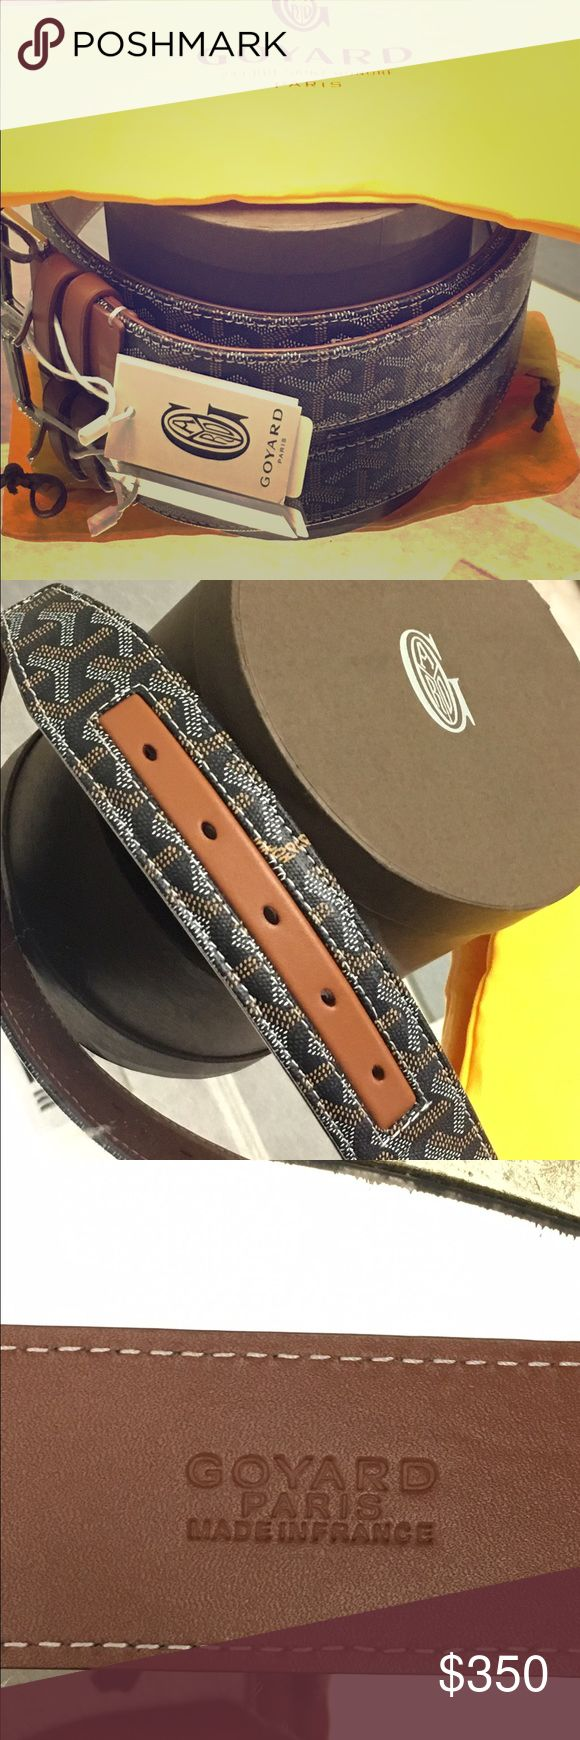 Goyard Belt 90 cm (size 36) Brand new Goyard Belt. Comes with original tags, box, and dust bag. The belt is too small for me. Goyard Accessories Belts